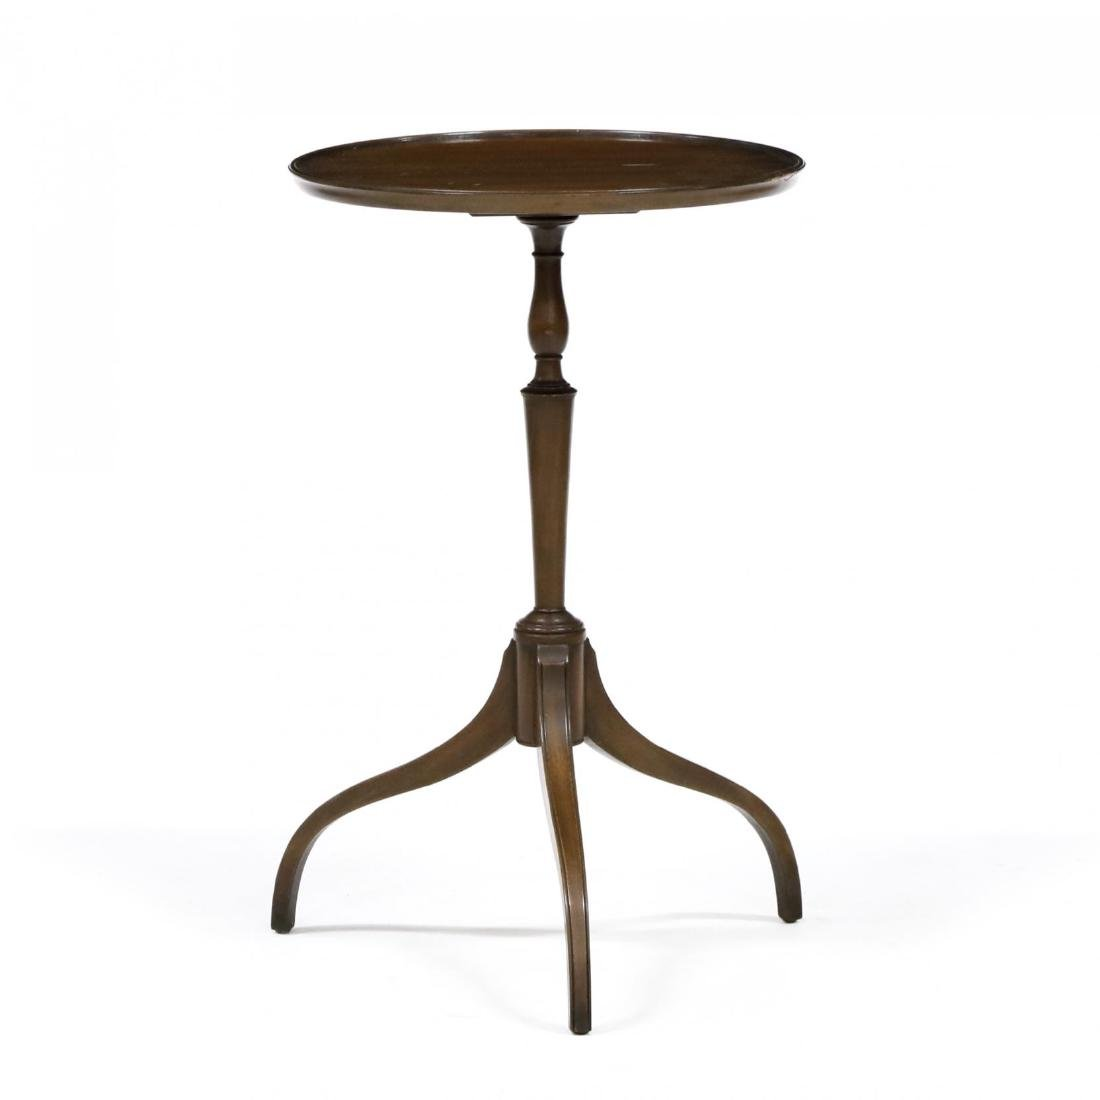 Kittinger, Federal Style Candle Stand